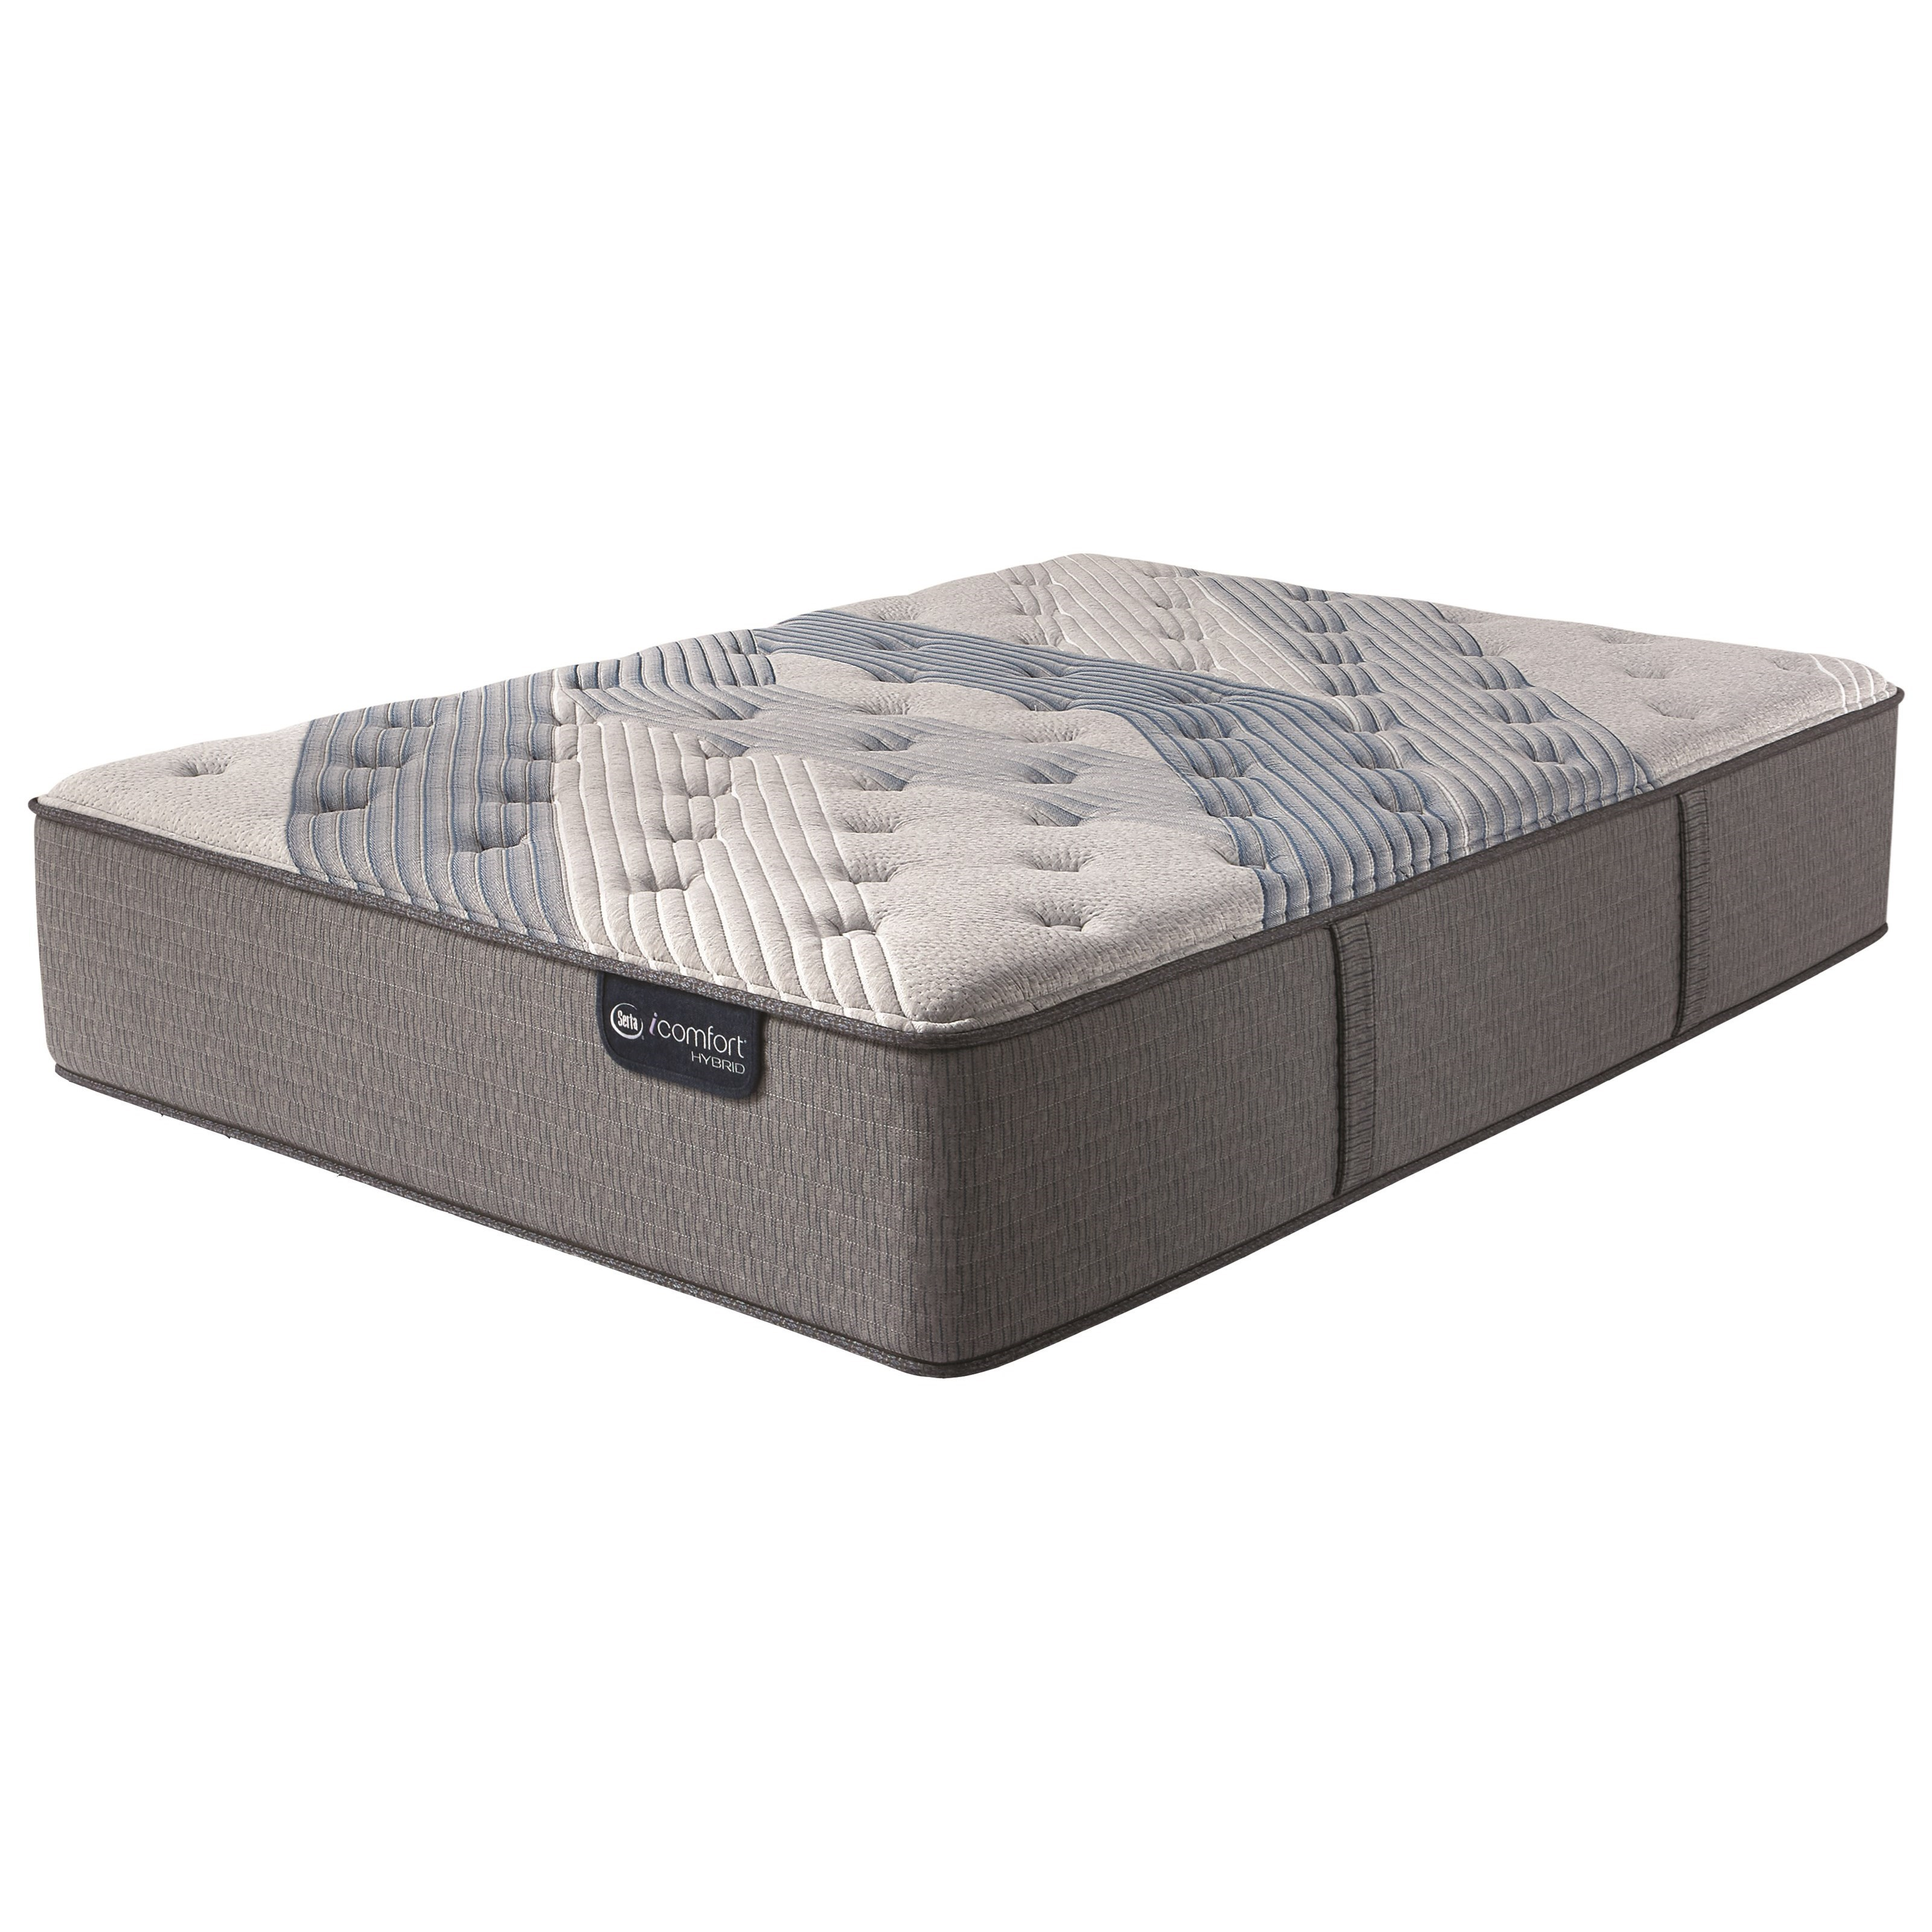 Cal King Luxury Firm Hybrid Mattress